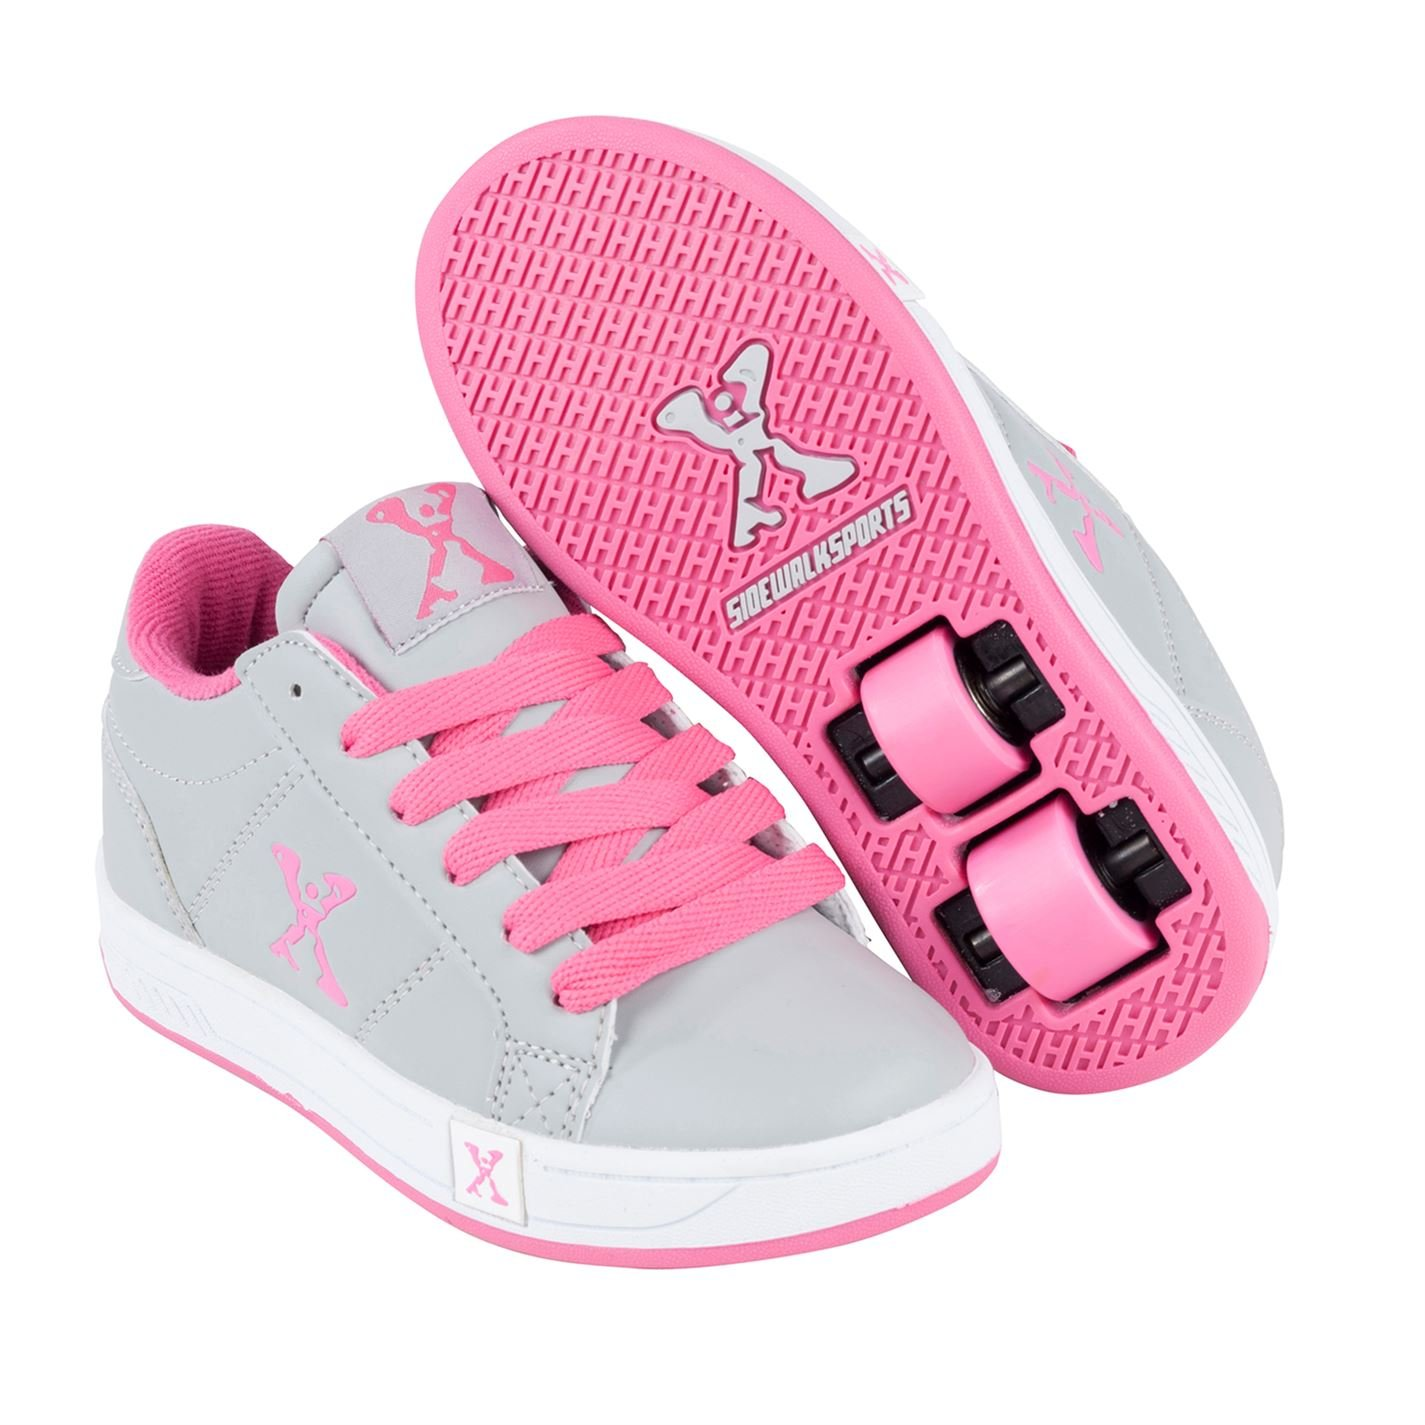 2bd36bc36062 Amazon.com  Sidewalk Sport Girls Sport Lane Wheeled Skate Shoes  Shoes